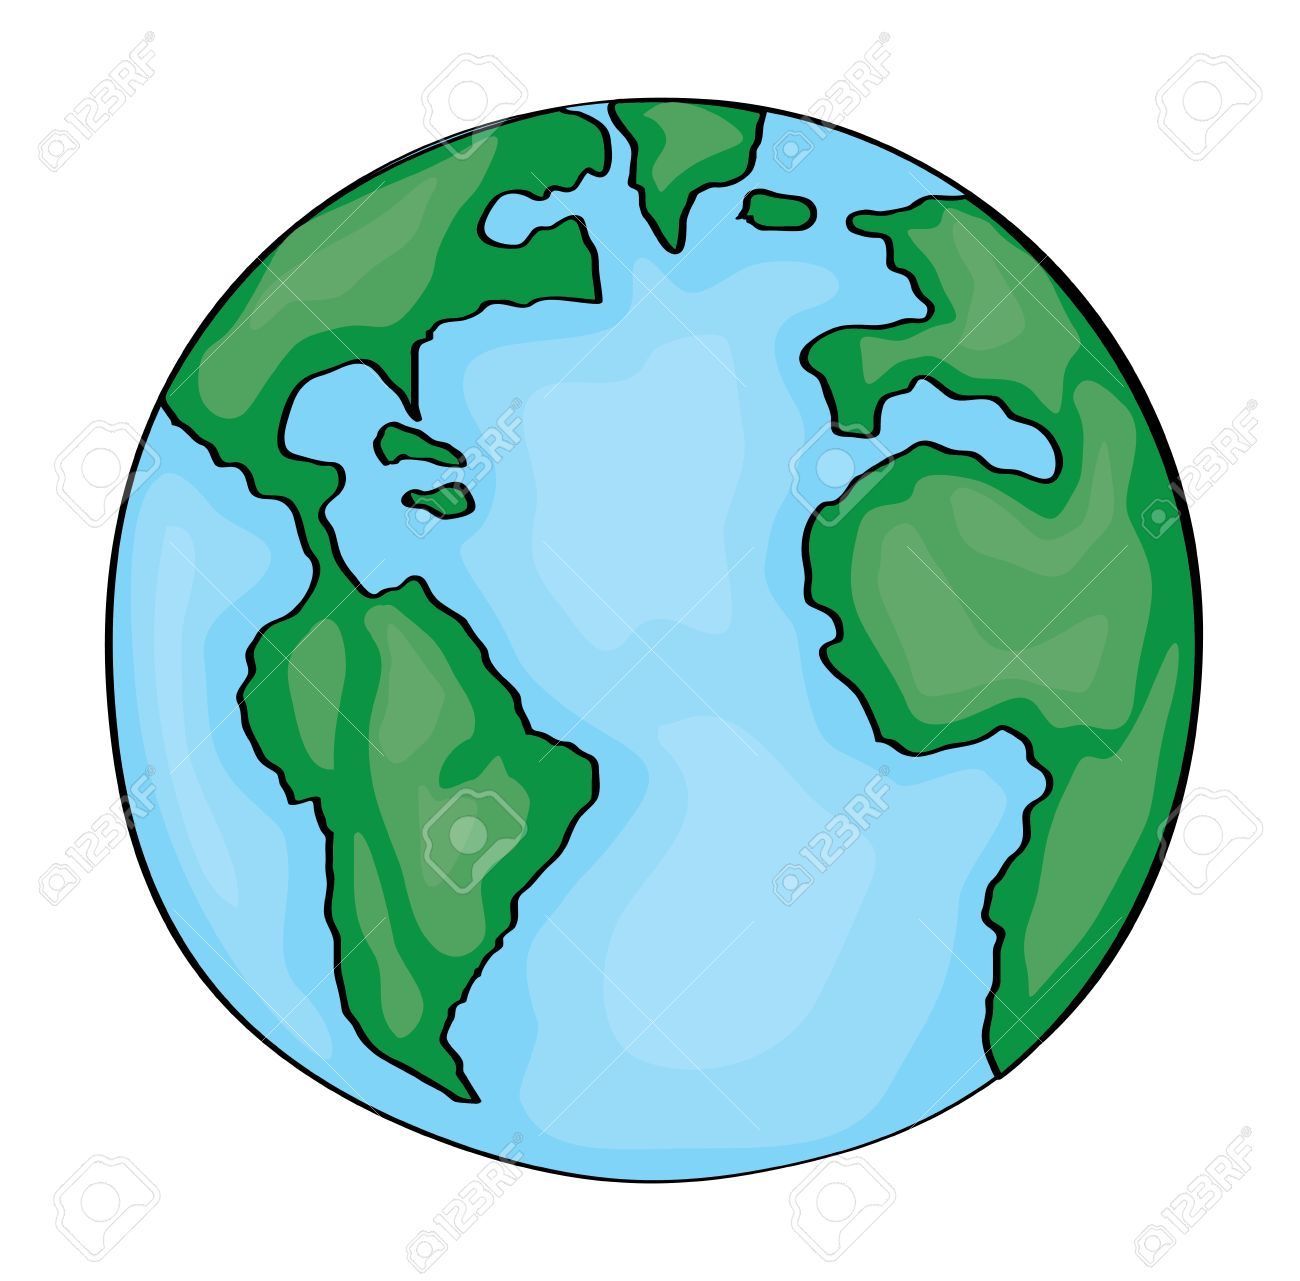 1300x1281 Earth Cartoon 2d. Vector Stock Photo, Picture And Royalty Free